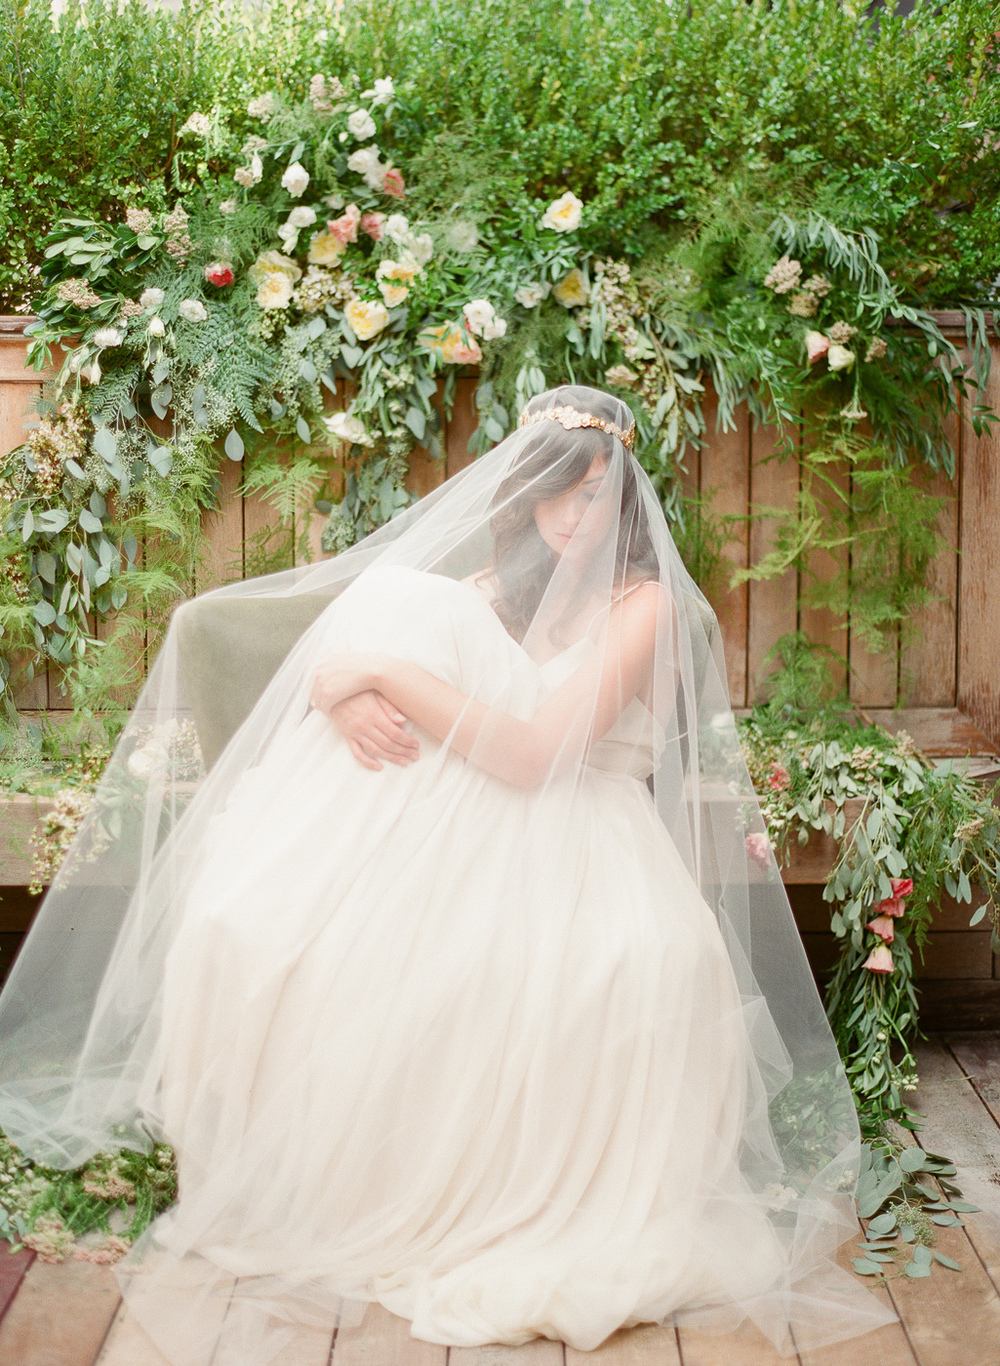 drop veil with gold flower detail hushed commotion